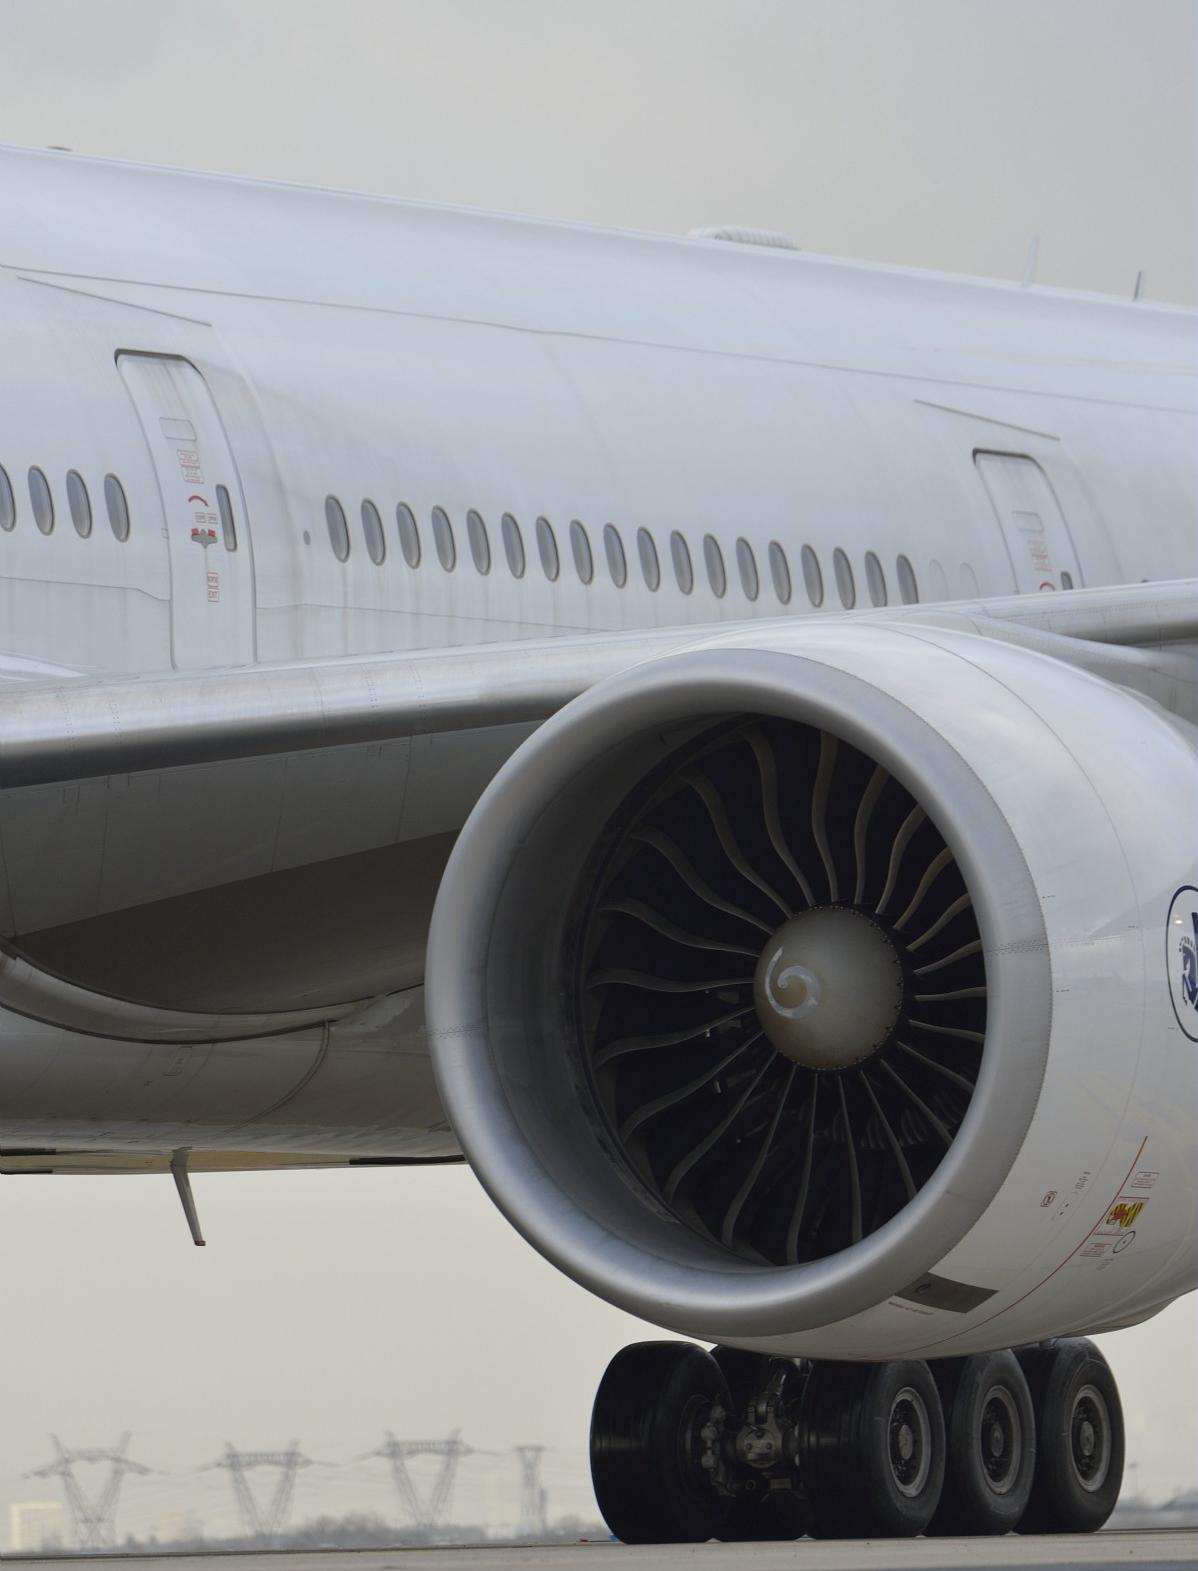 B777-300ER company Air France equipped with GE90-115B